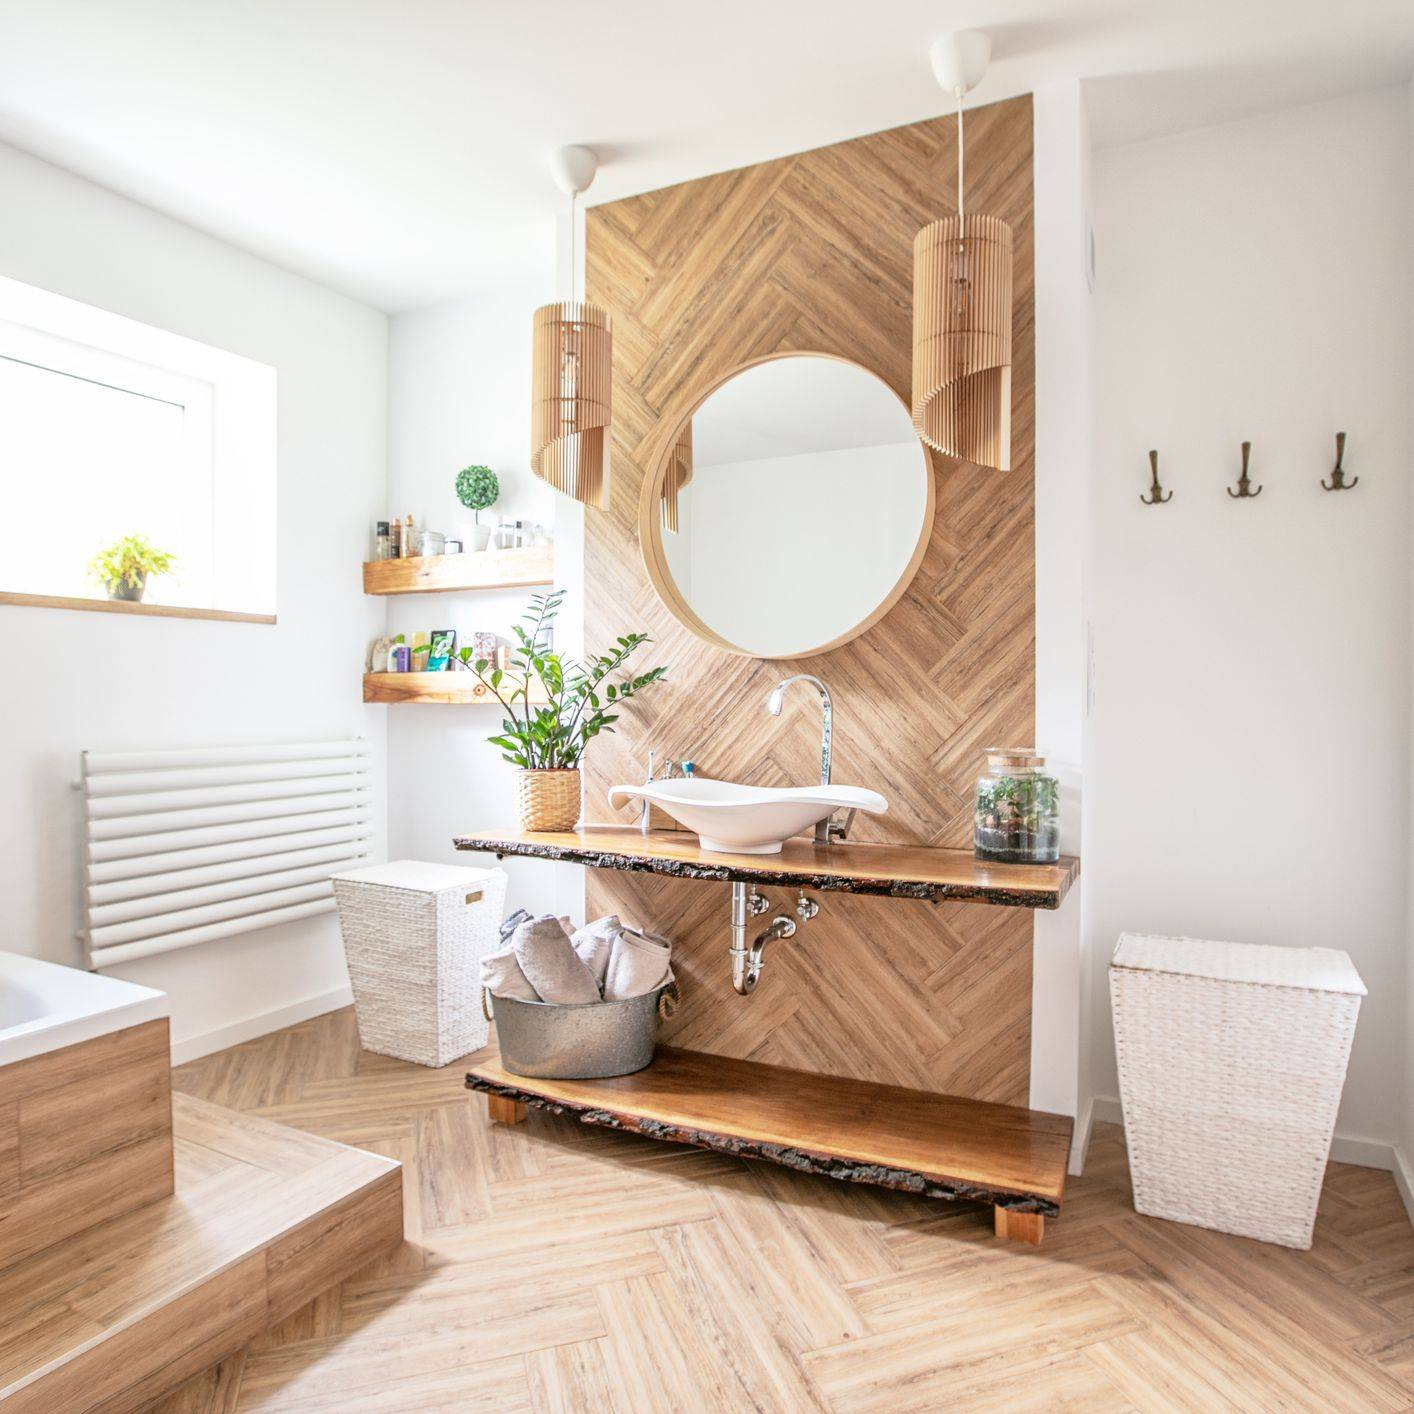 Warm Colored Wood Tile Bathroom With Special Lighting